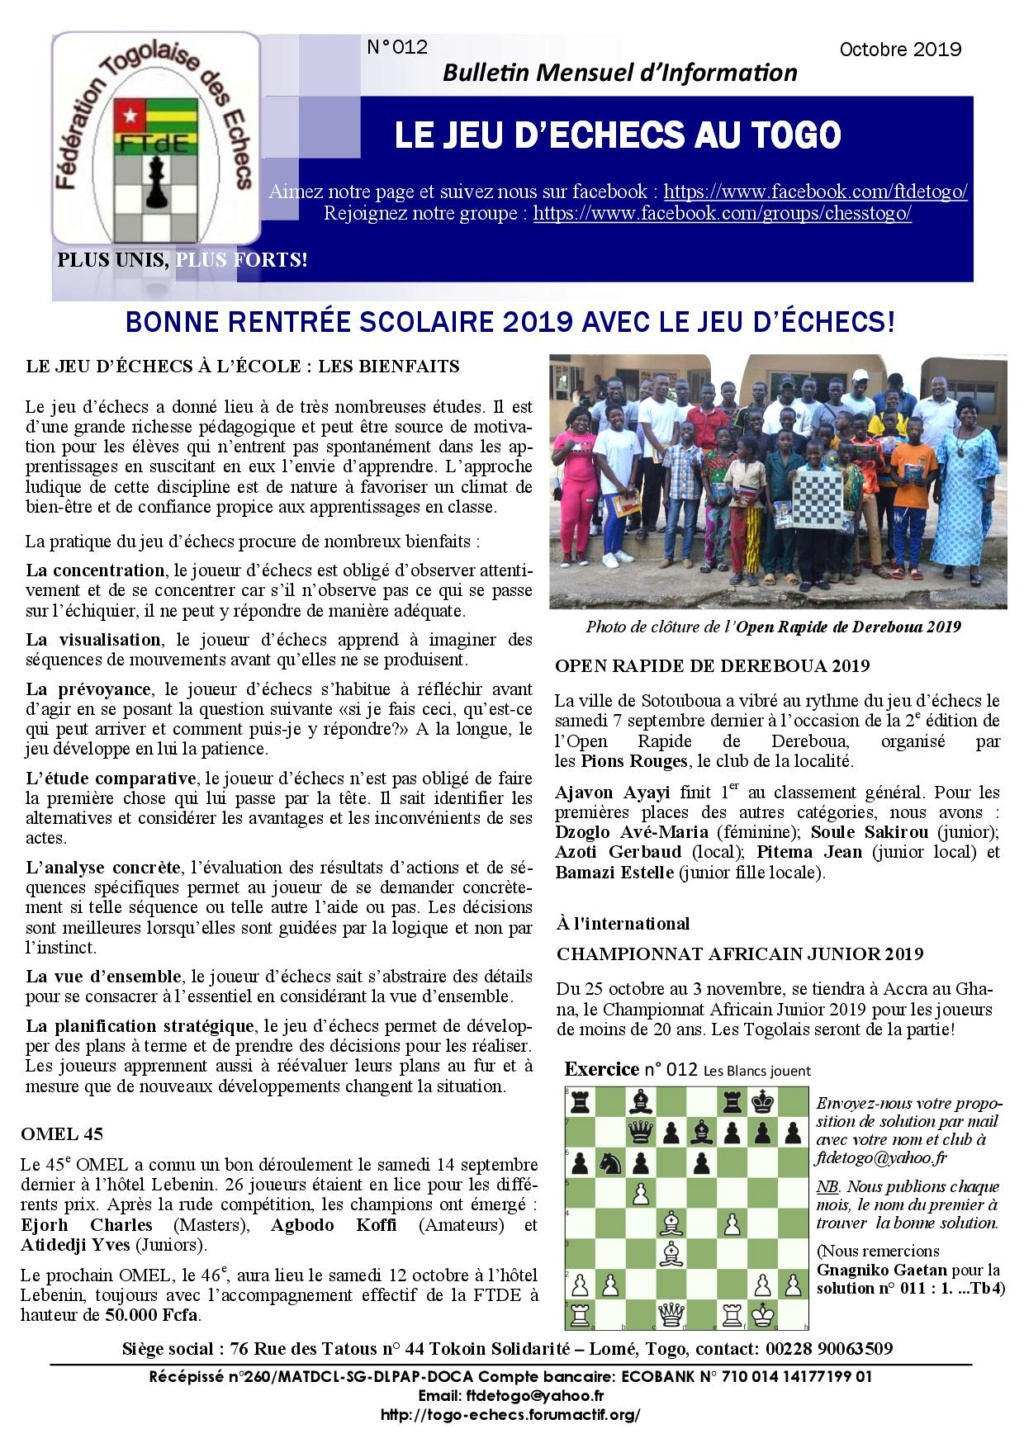 Le Bulletin Mensuel d'Information n° 012 oct 2019 Bmi_ft20